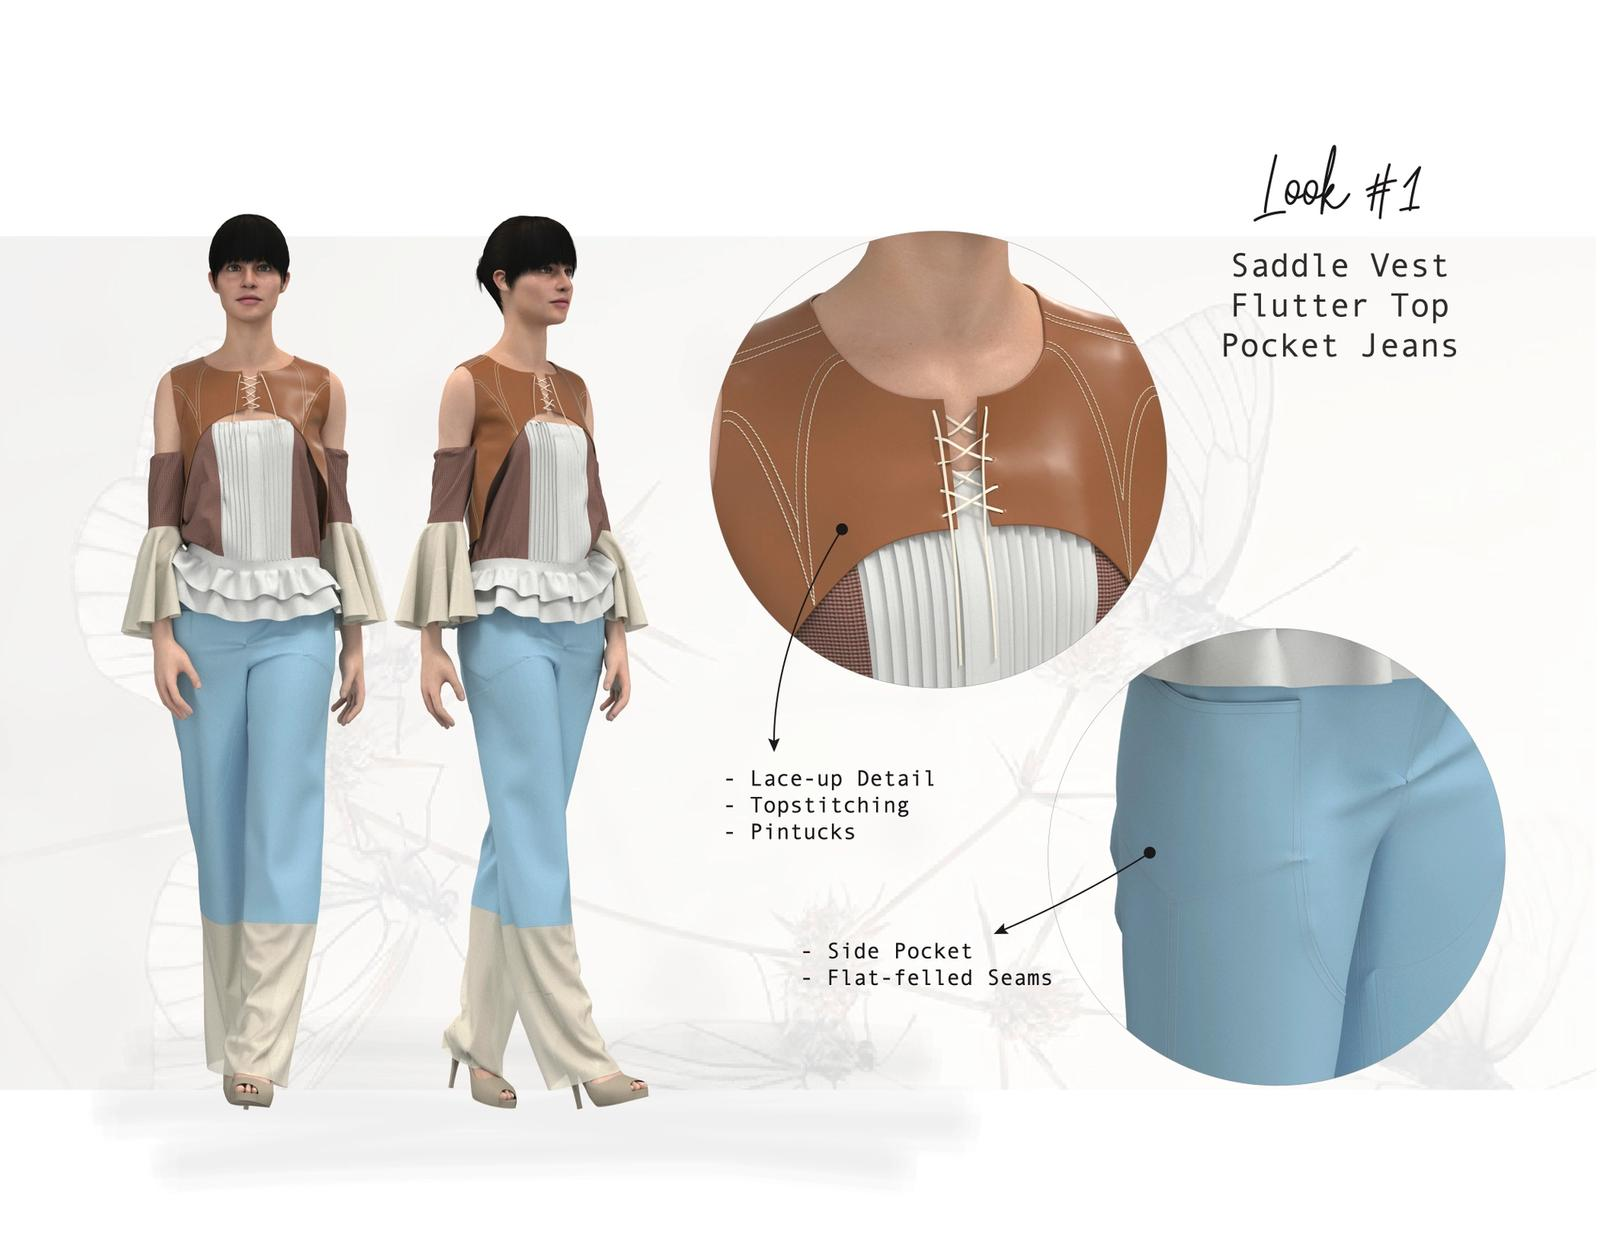 CLO3D Rendering of previous Fashion Design 3 illustration